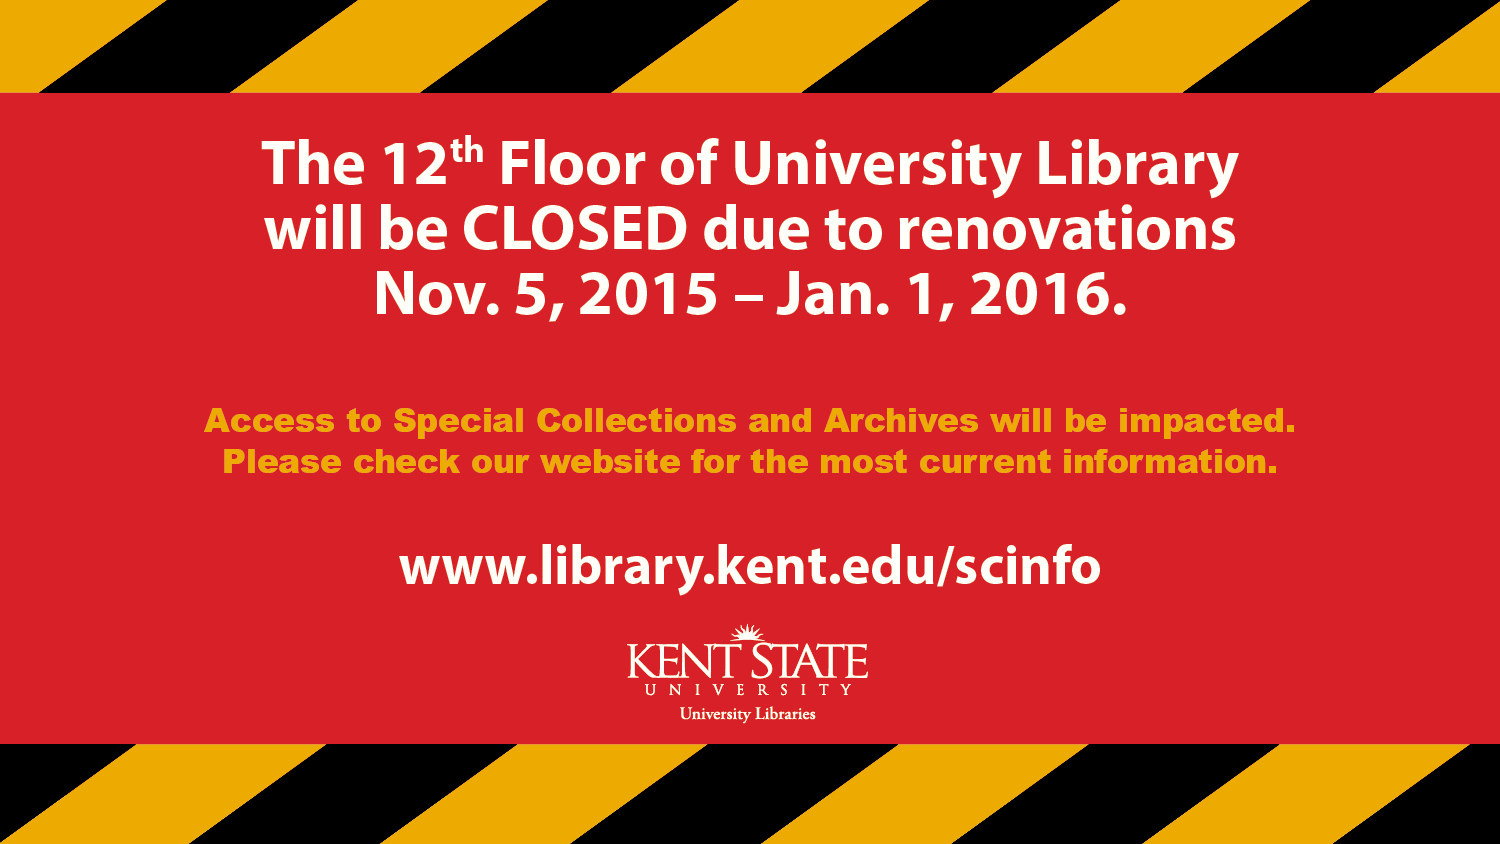 Show more about The 12th Floor of University Library will be CLOSED due to renovations Nov. 5, 2015 - Jan. 1, 2016.